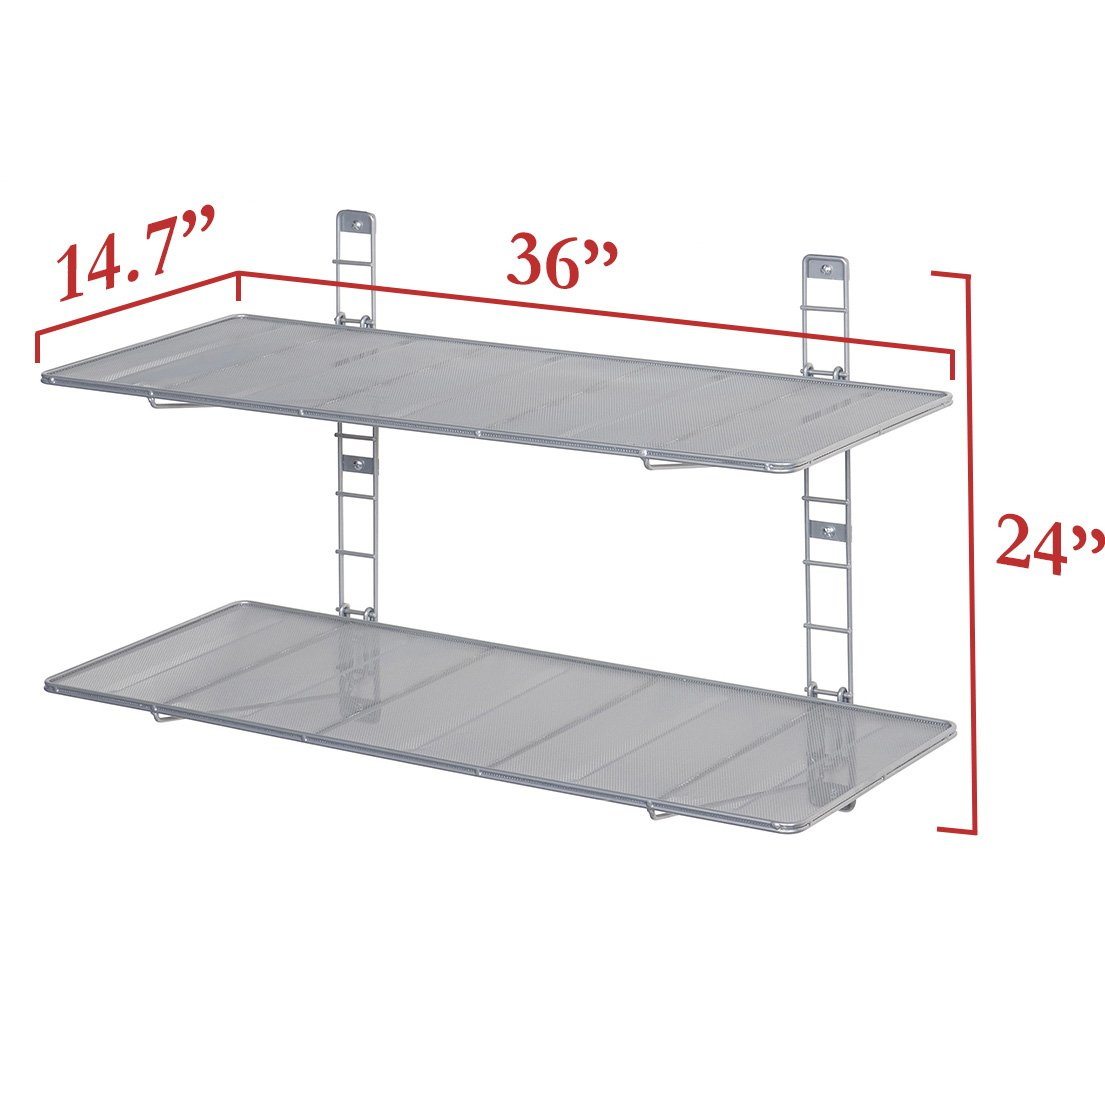 Seville Classics 2-Tier Iron Mesh Adjustable Floating Wall Shelves, 36'' x 14'', Satin Pewter by Seville Classics (Image #2)